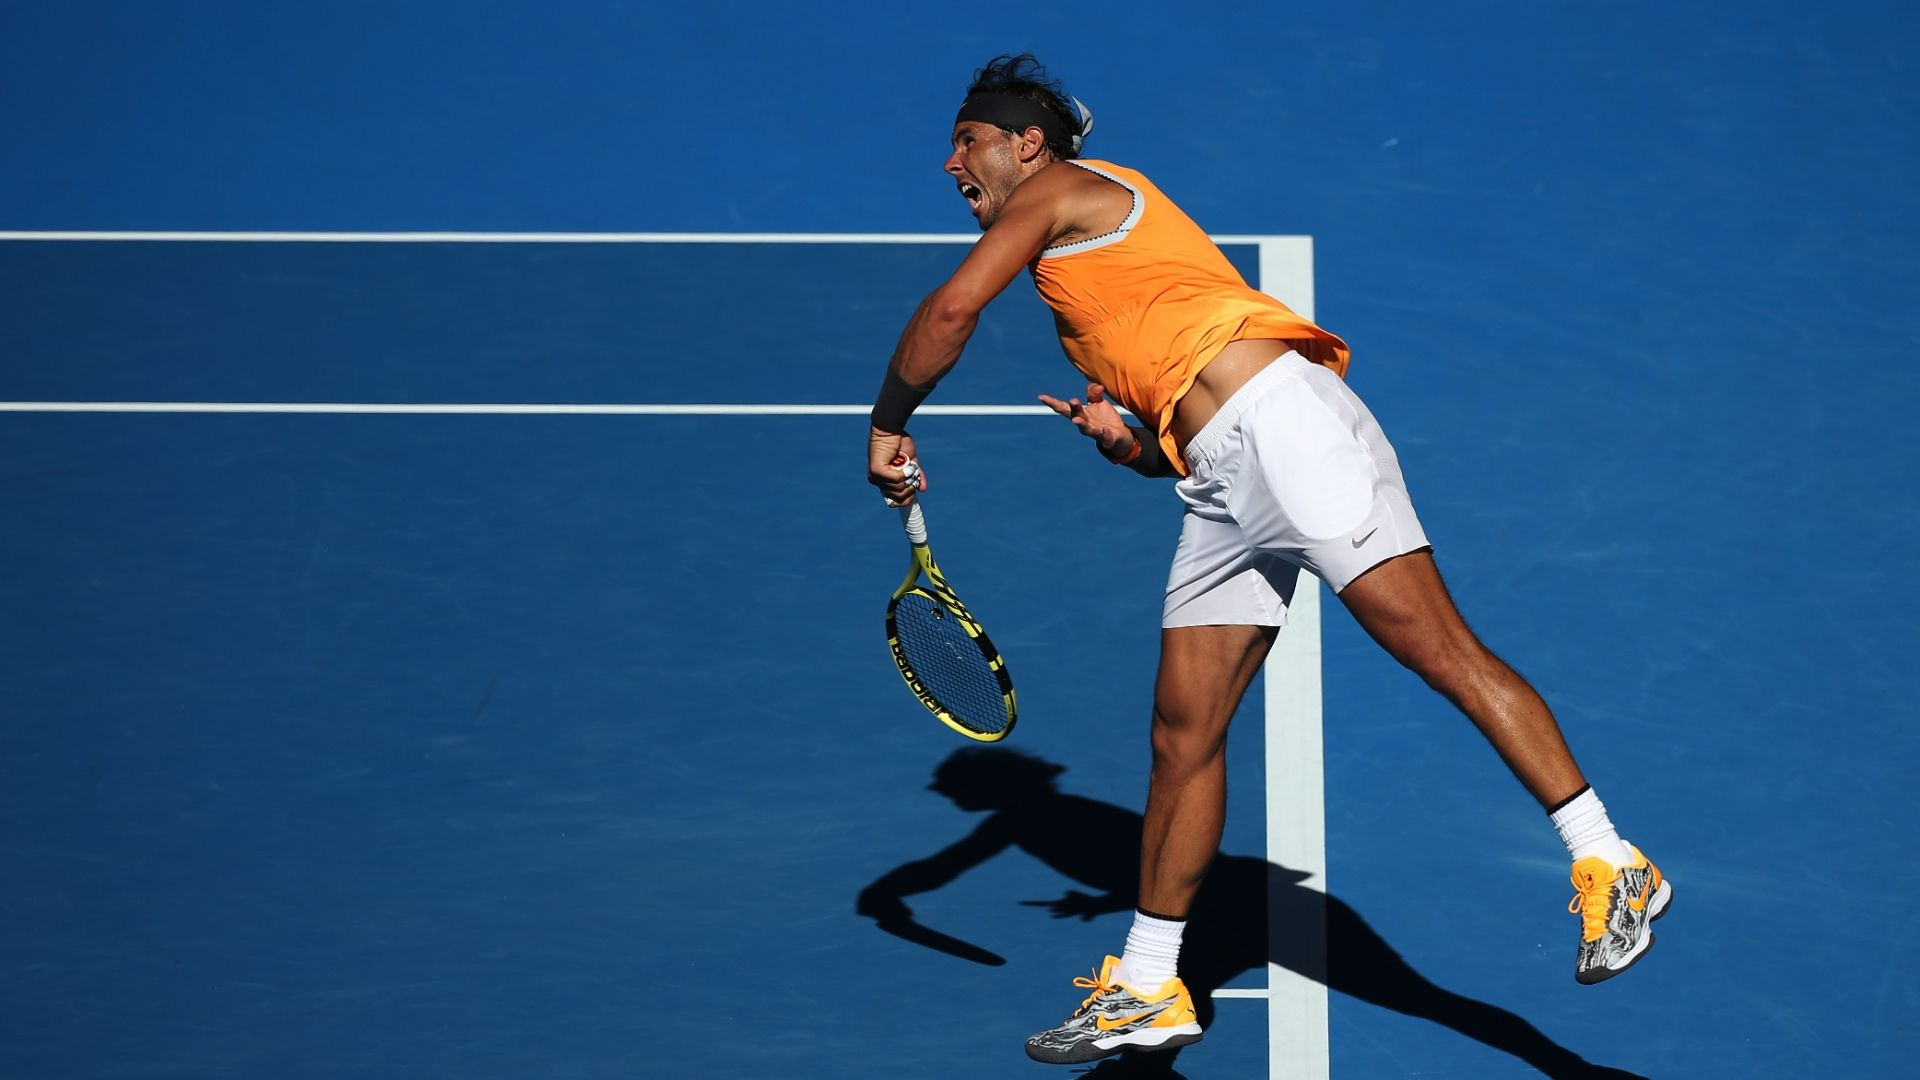 Nadal advances to his 11th quarterfinal at Aussie Open